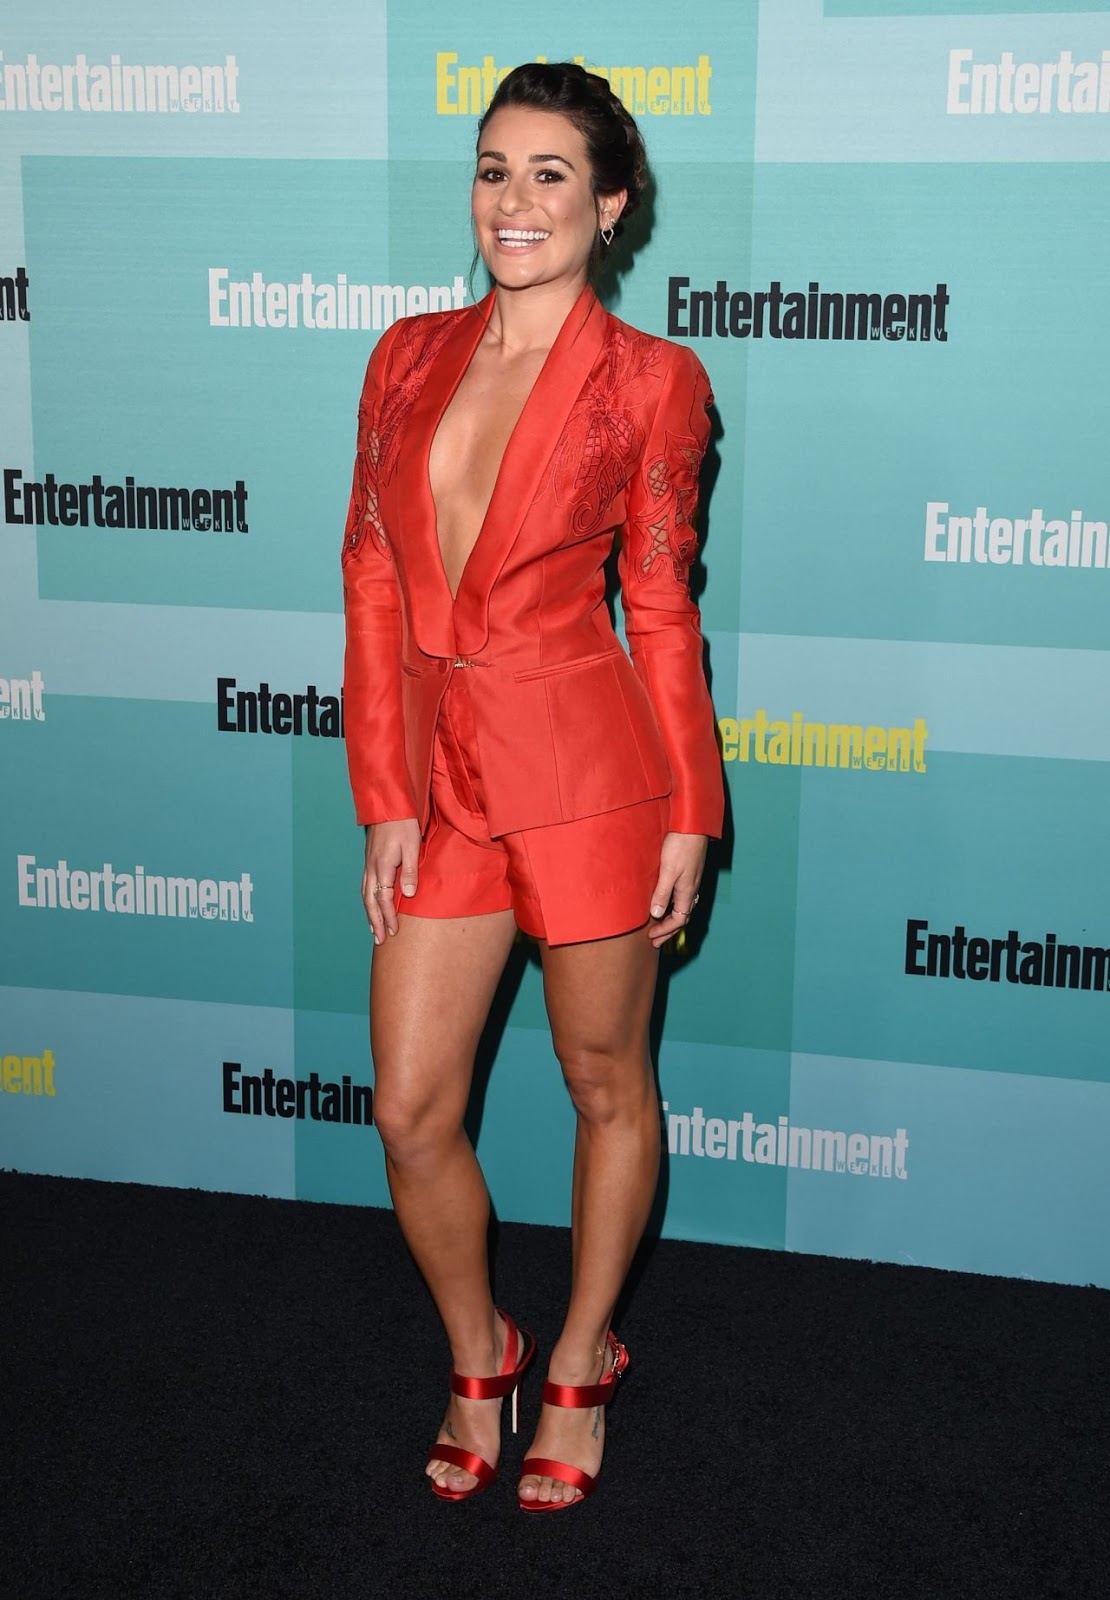 Lea Michele goes braless in a blazer at the Entertainment Weekly Party at Comic-Con 2015